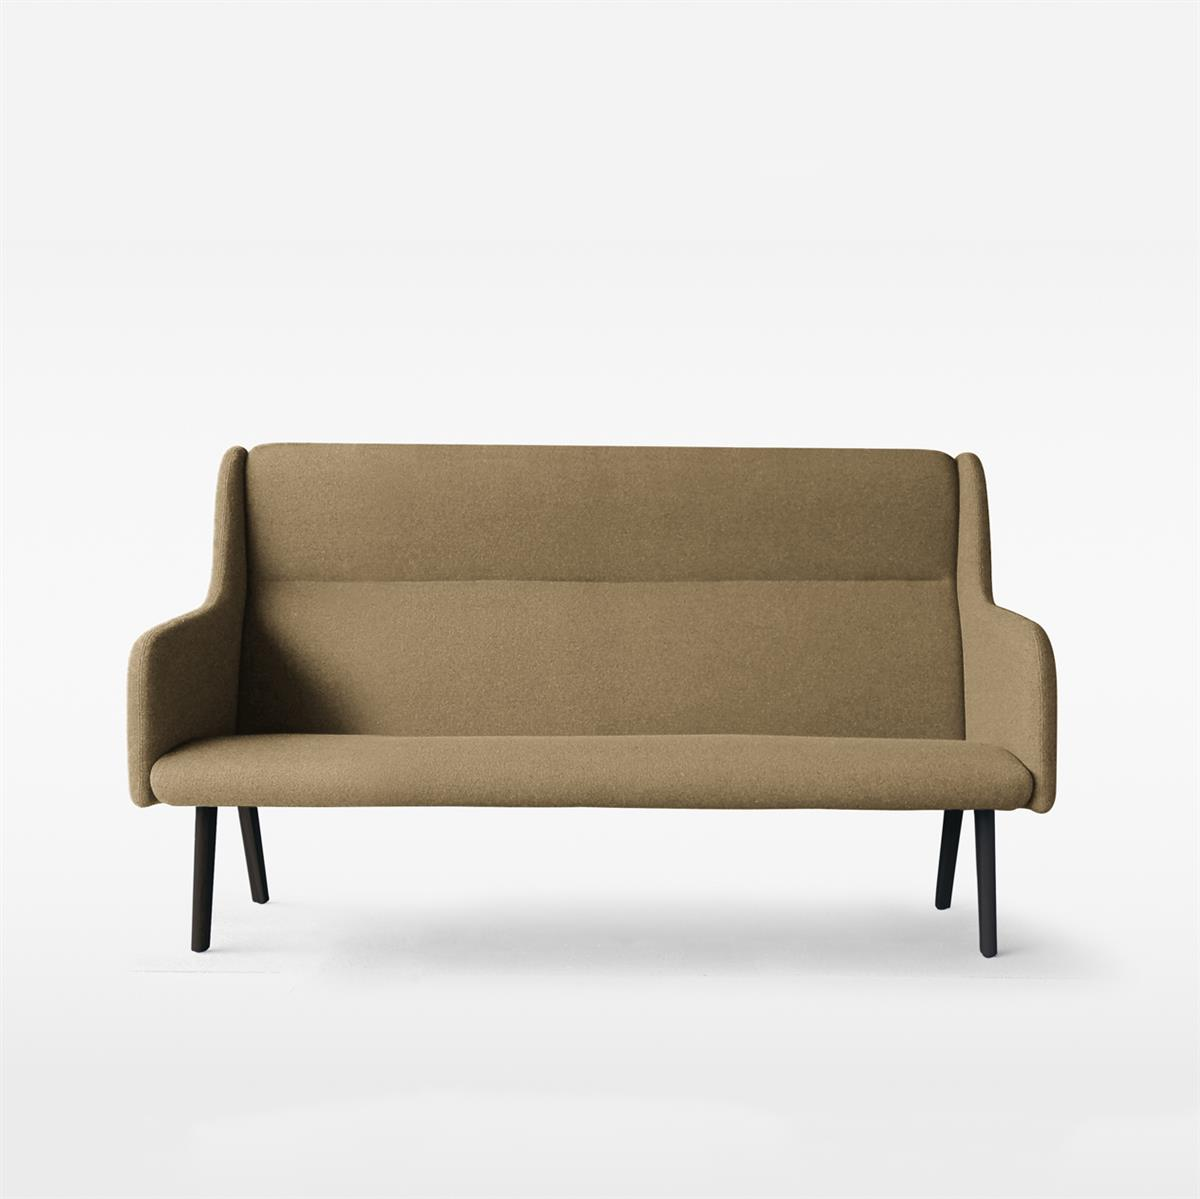 Anyway Highback 3 Seater - Main Line Flax, sorte ben